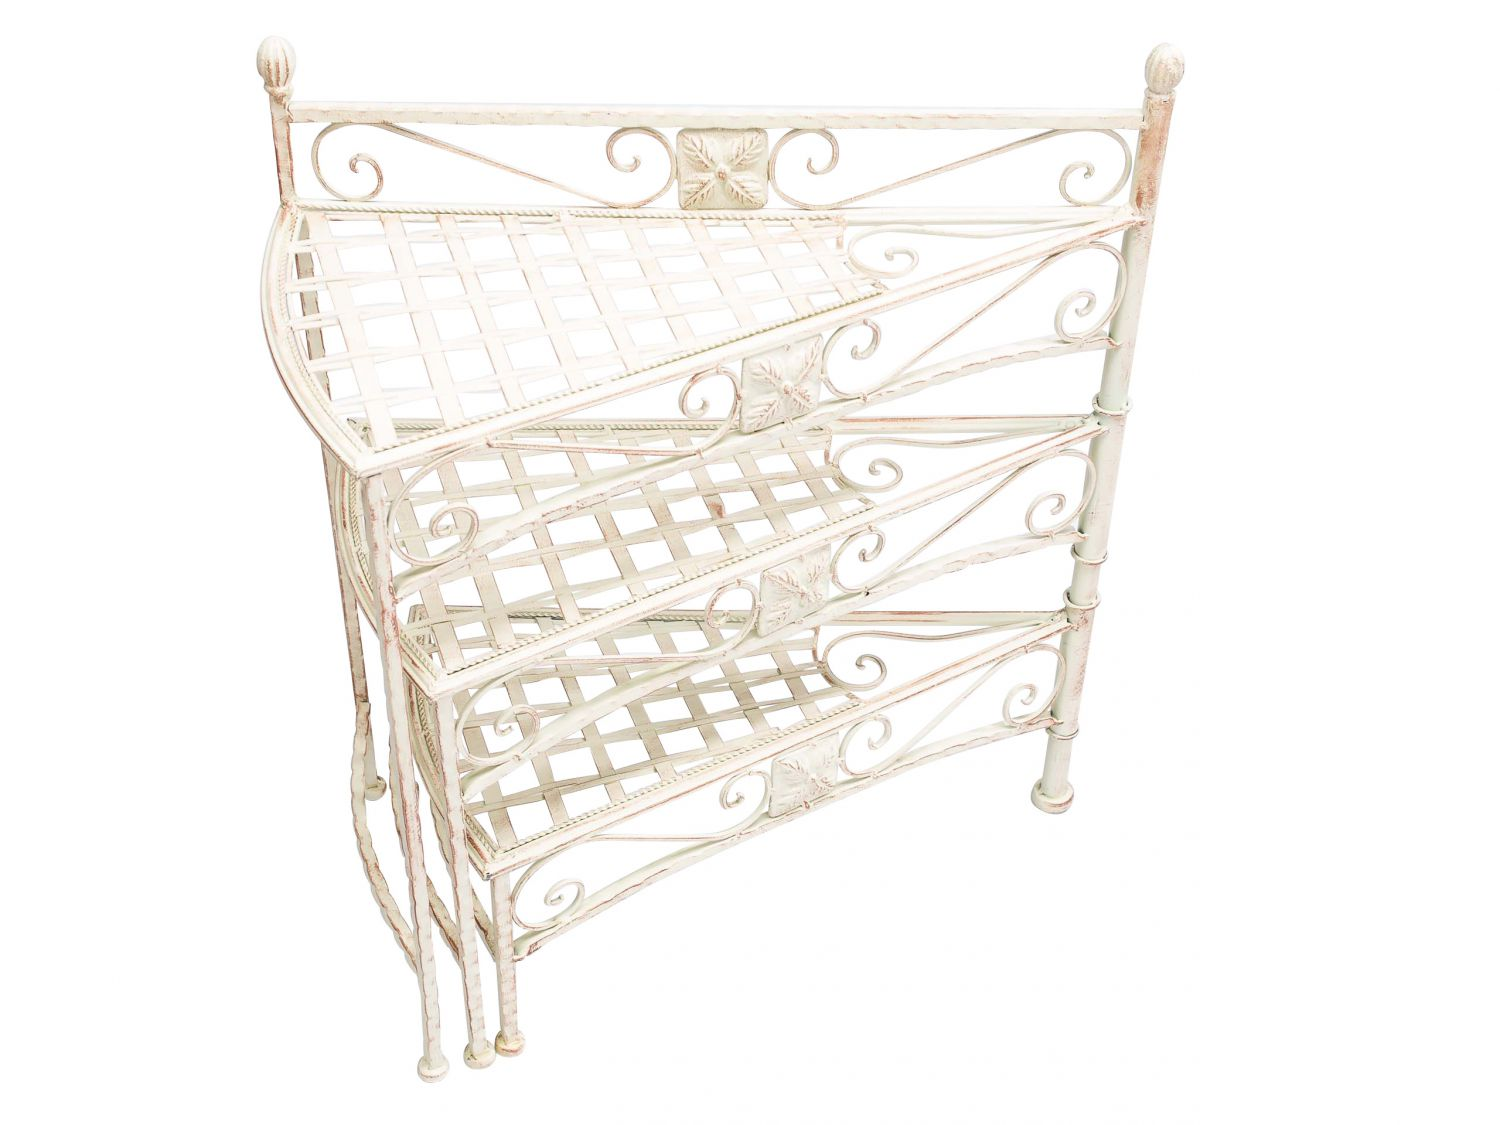 meuble tag res pour pot de fleurs plantes style antique escalier blanc ebay. Black Bedroom Furniture Sets. Home Design Ideas